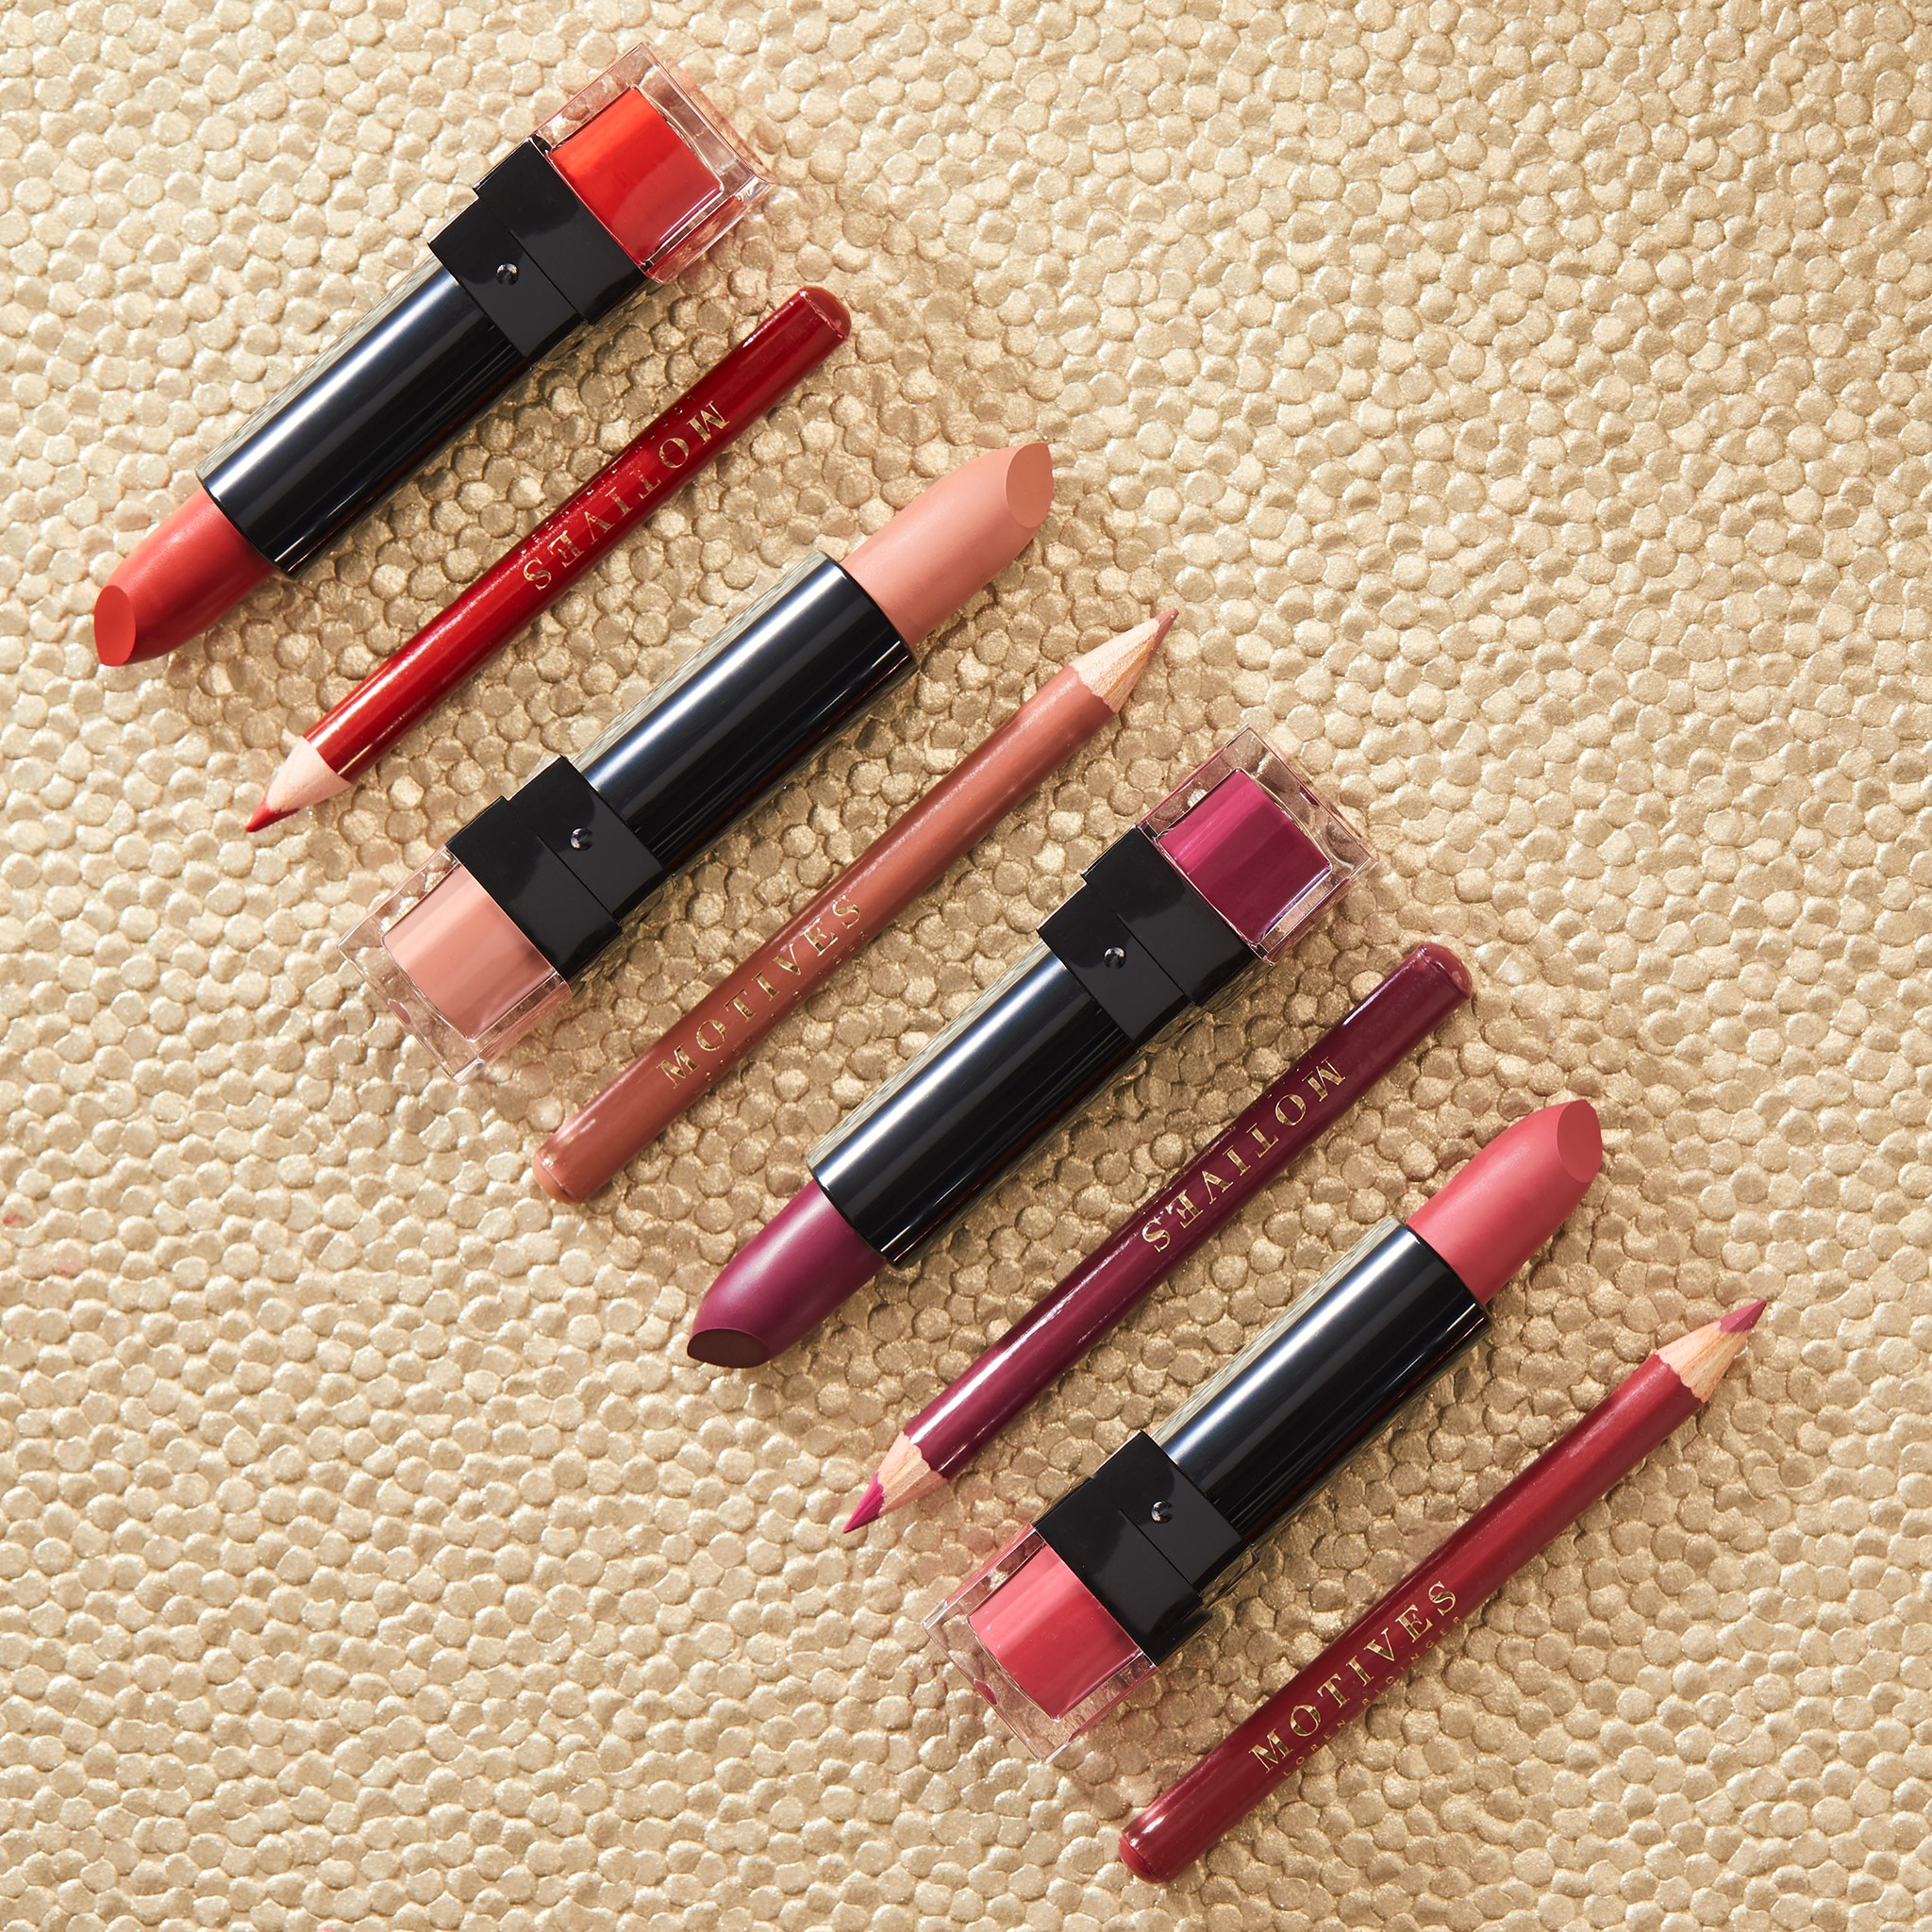 Lip Kits-Your Secret Weapon For Perfectly, Contoured, Matte Lips